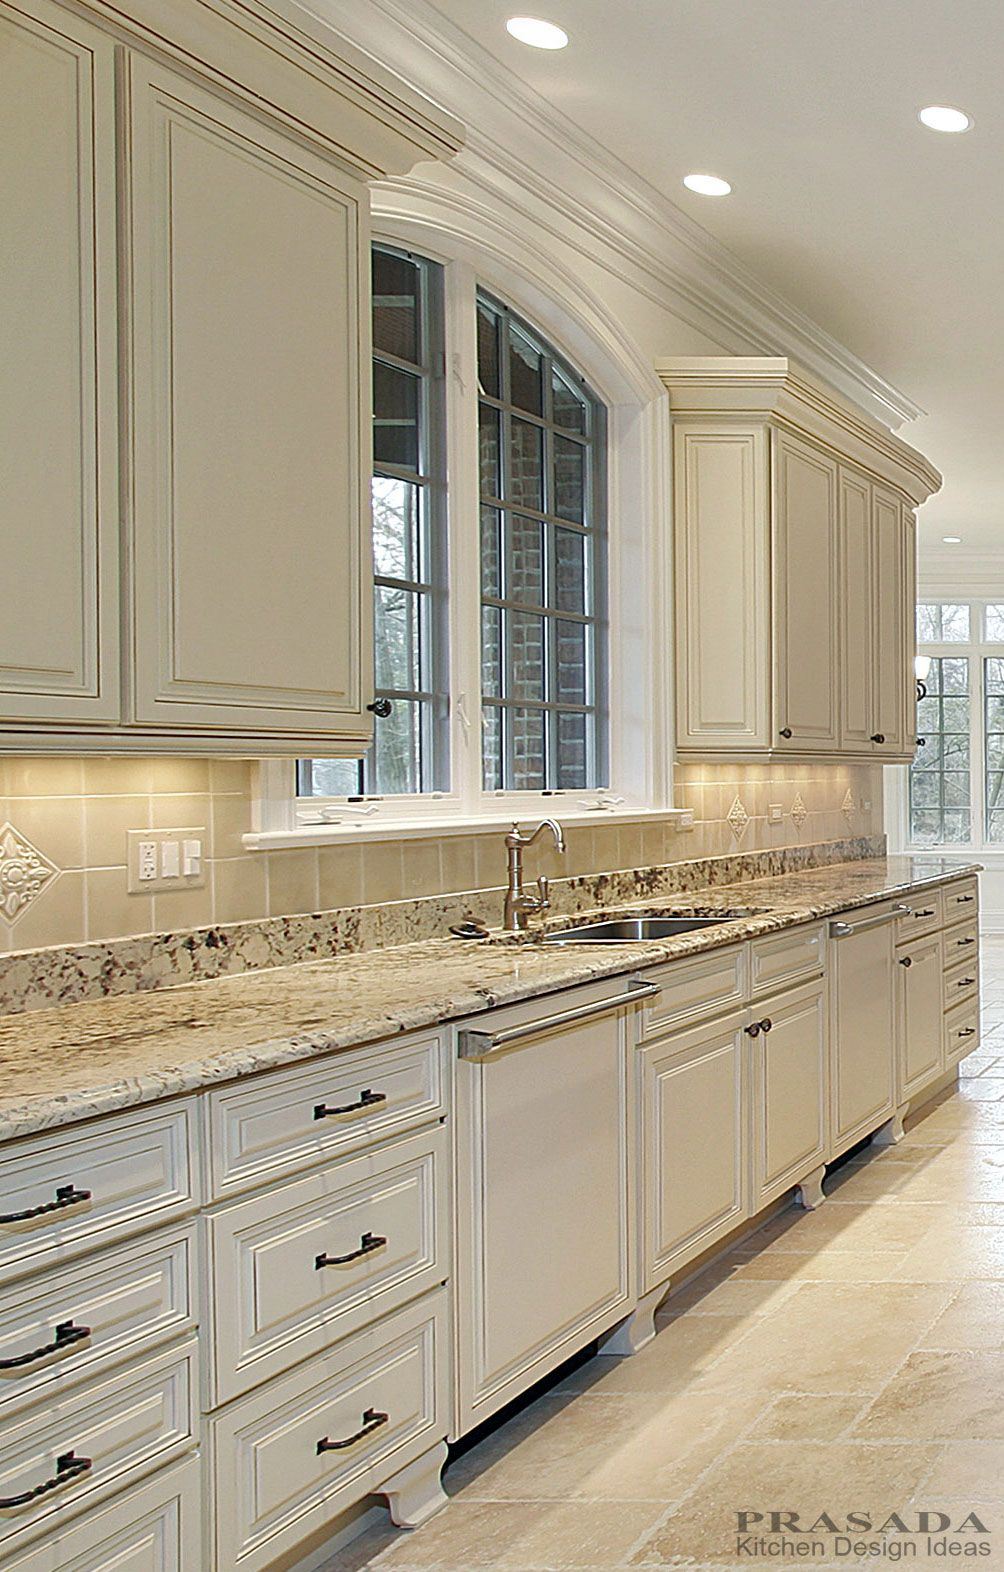 Kitchen Design Ideas Interior Design Kitchen Kitchen Design